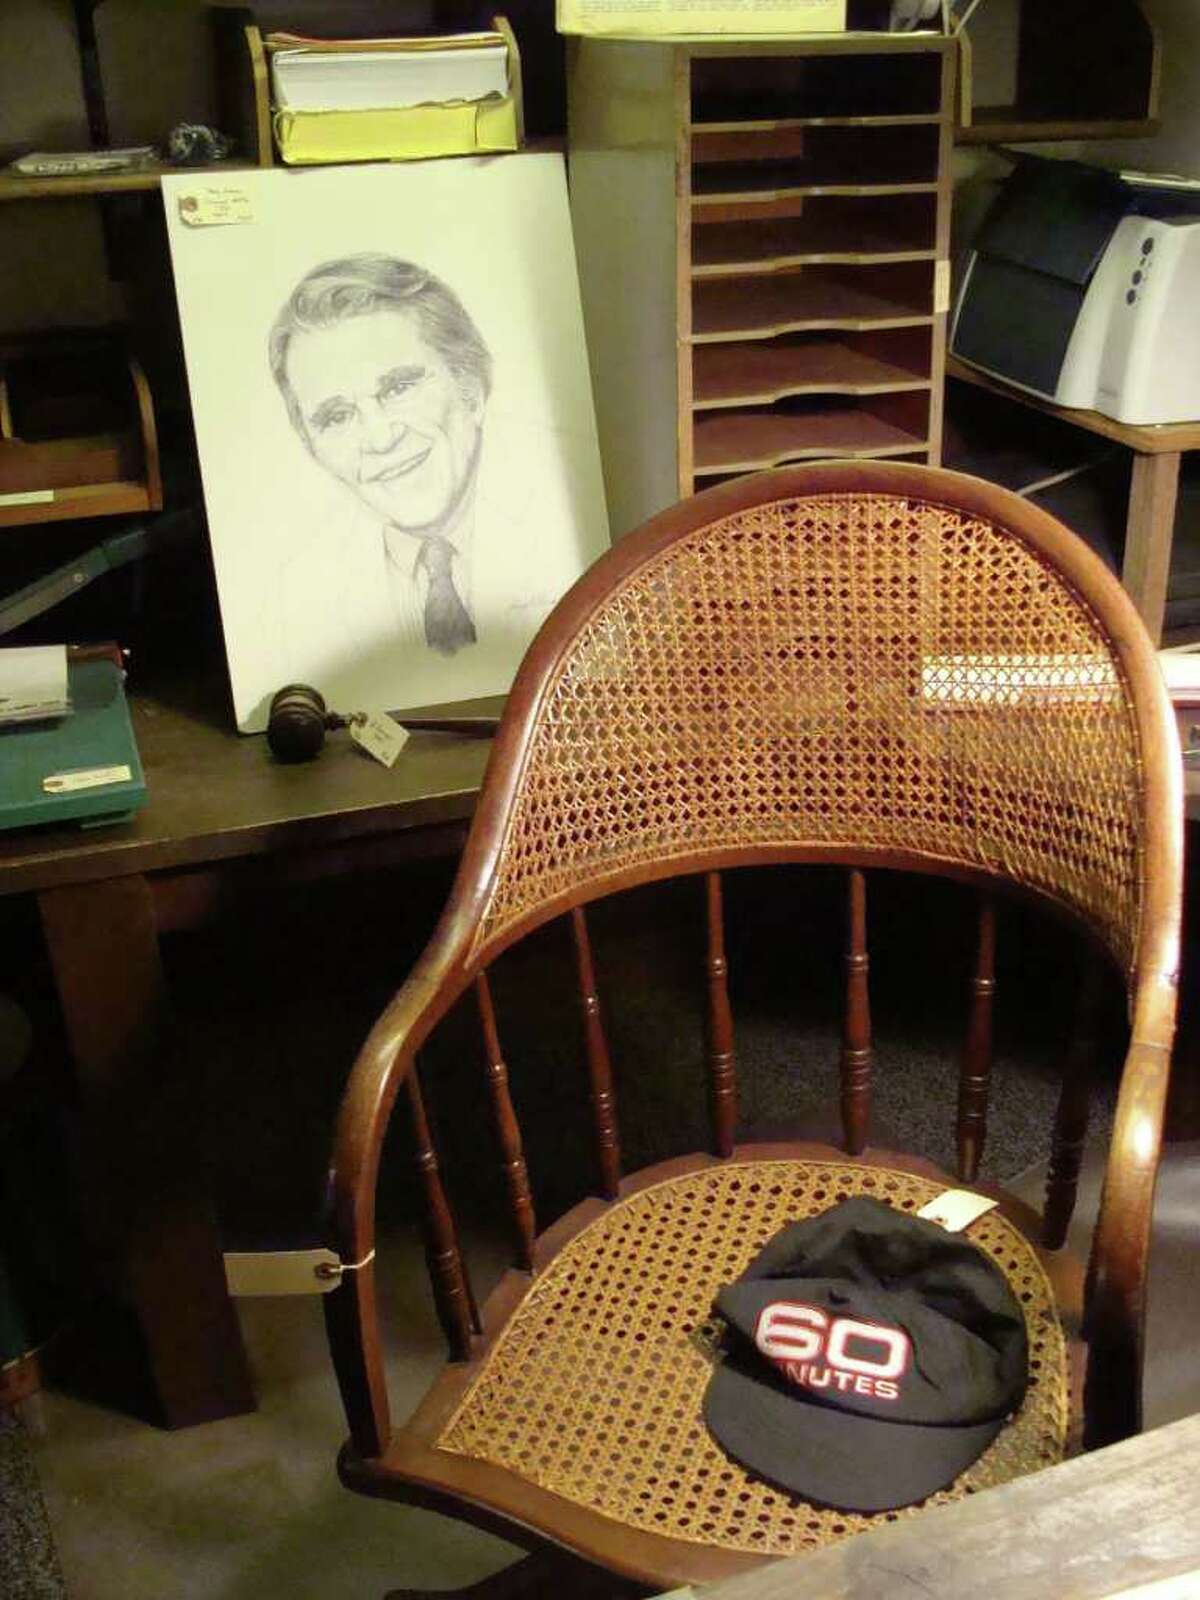 """Andy Rooney's basement office chair in his Rowayton home, his """"60 Mintues"""" cap and a portrait were among the items on sale Friday, the first day of a three-day estate sale."""